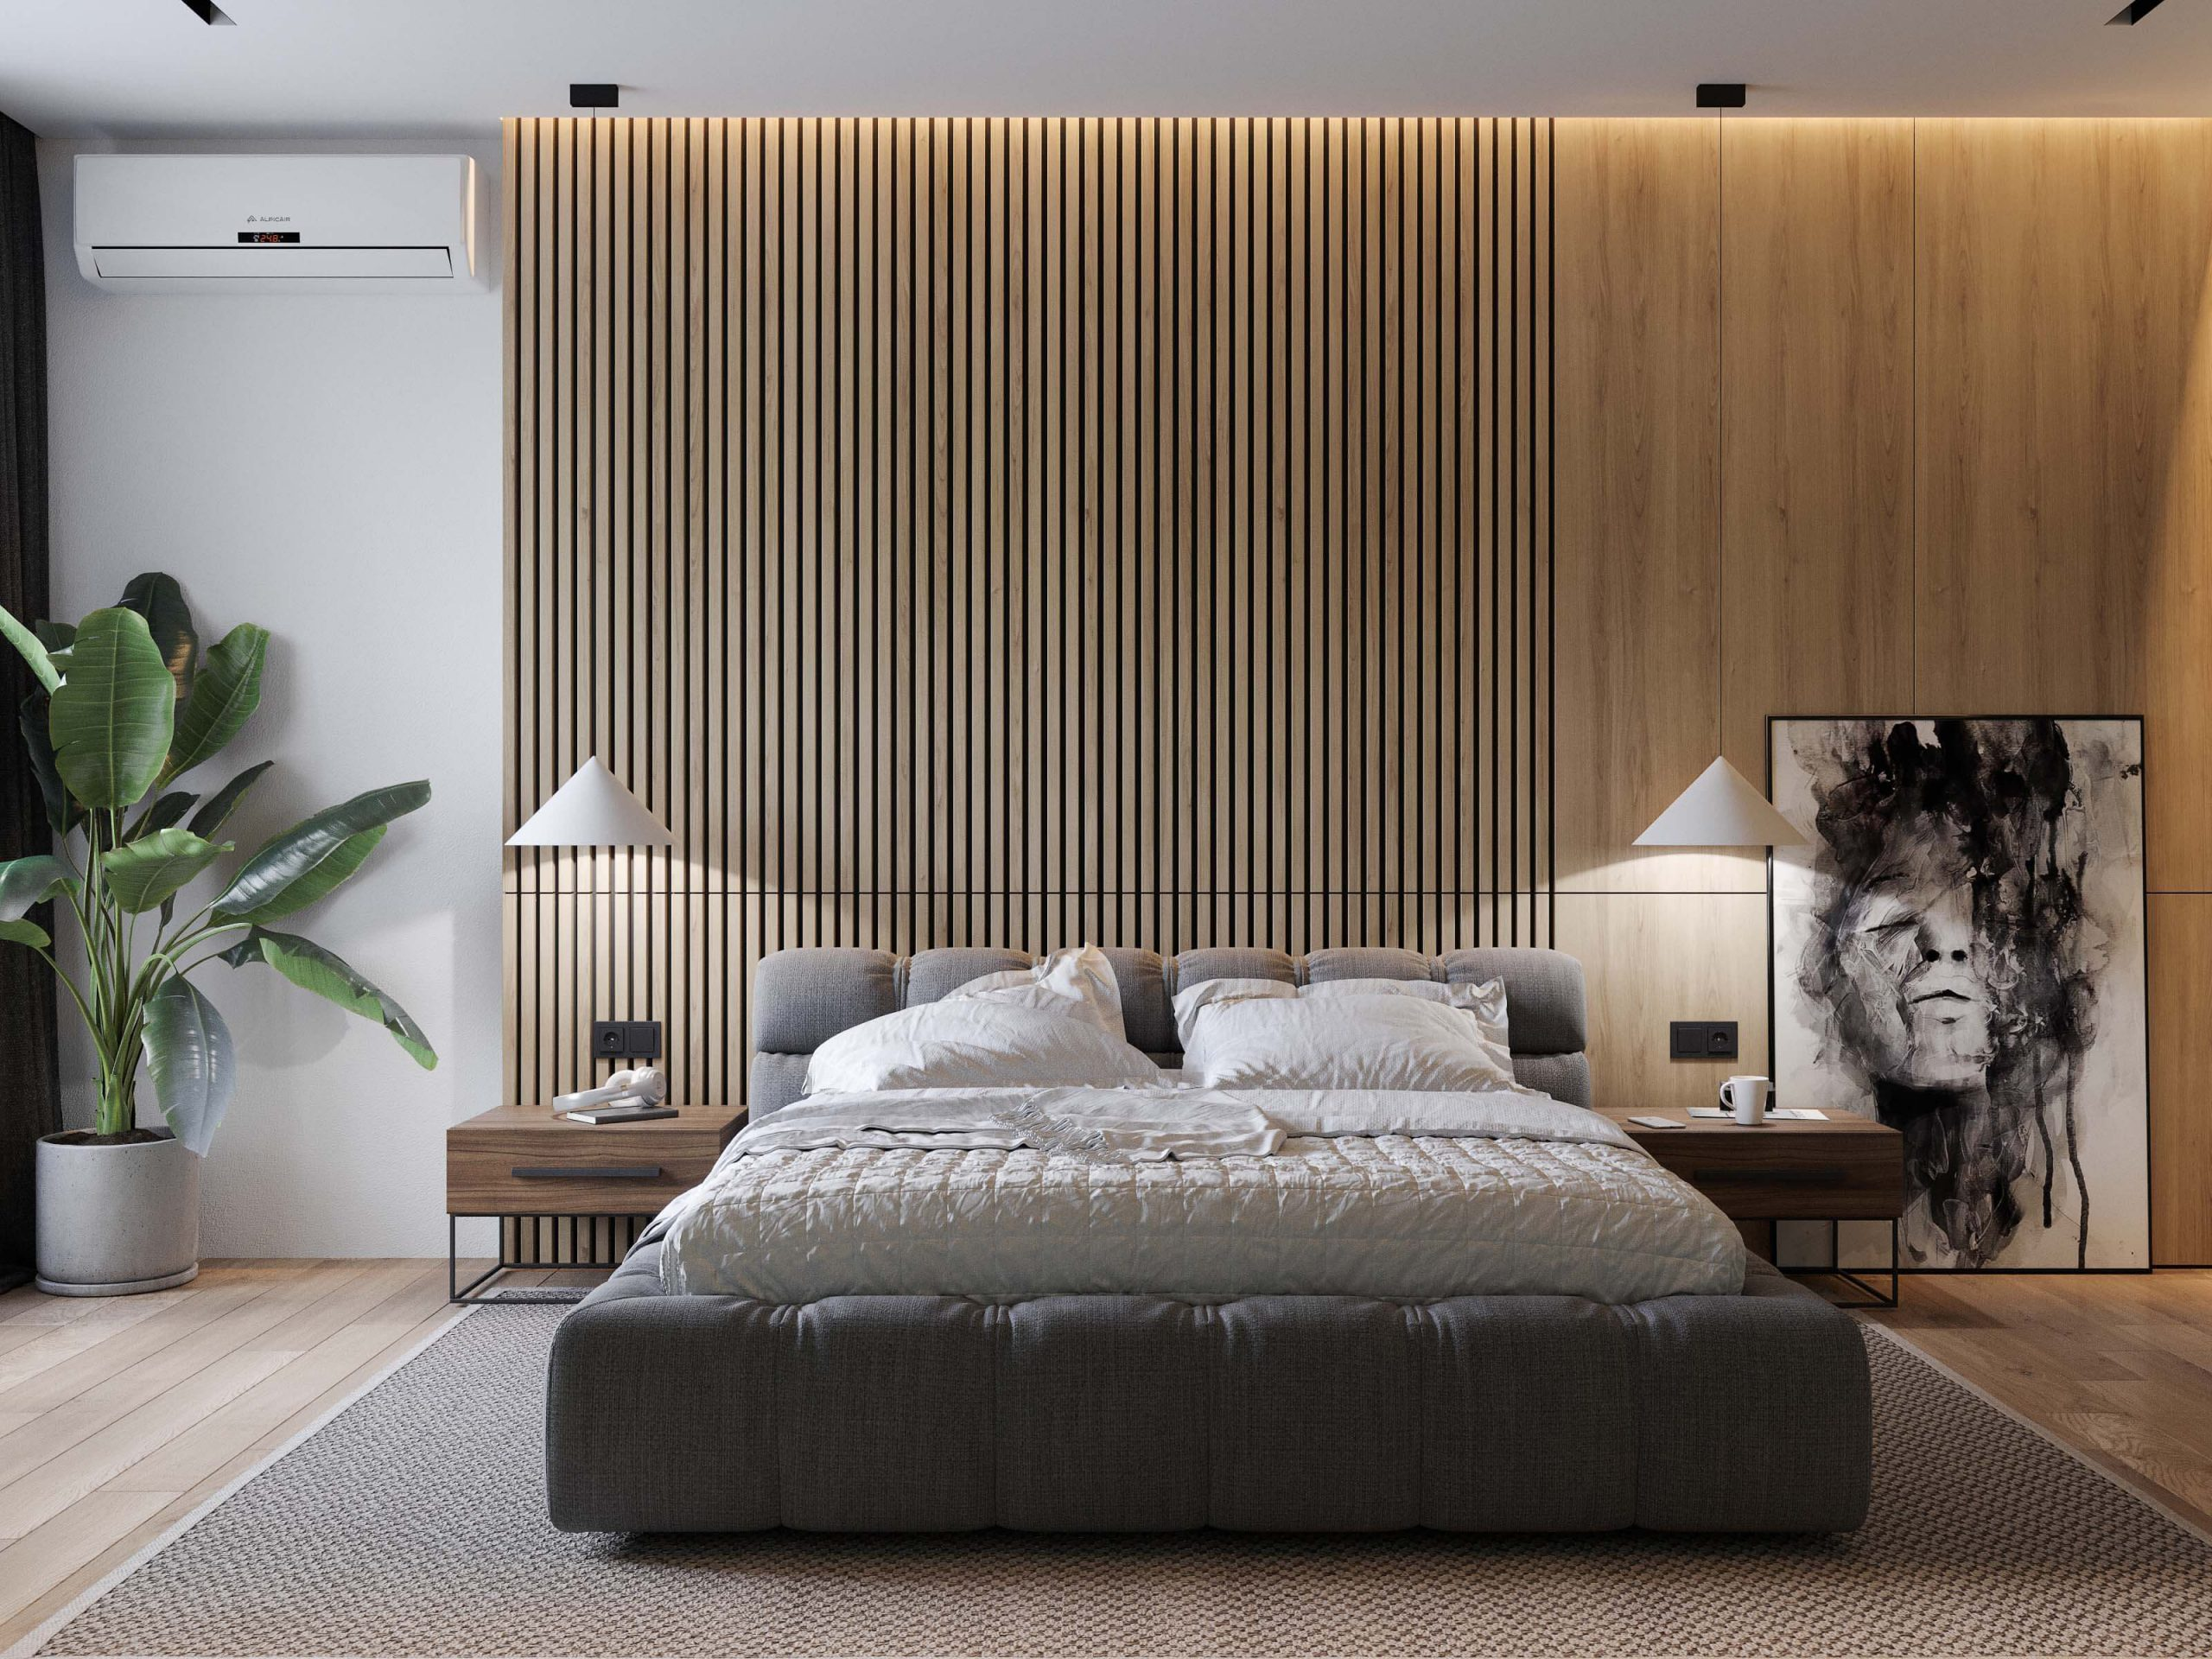 bedroom interior design in minimalist style with a large panoramic window